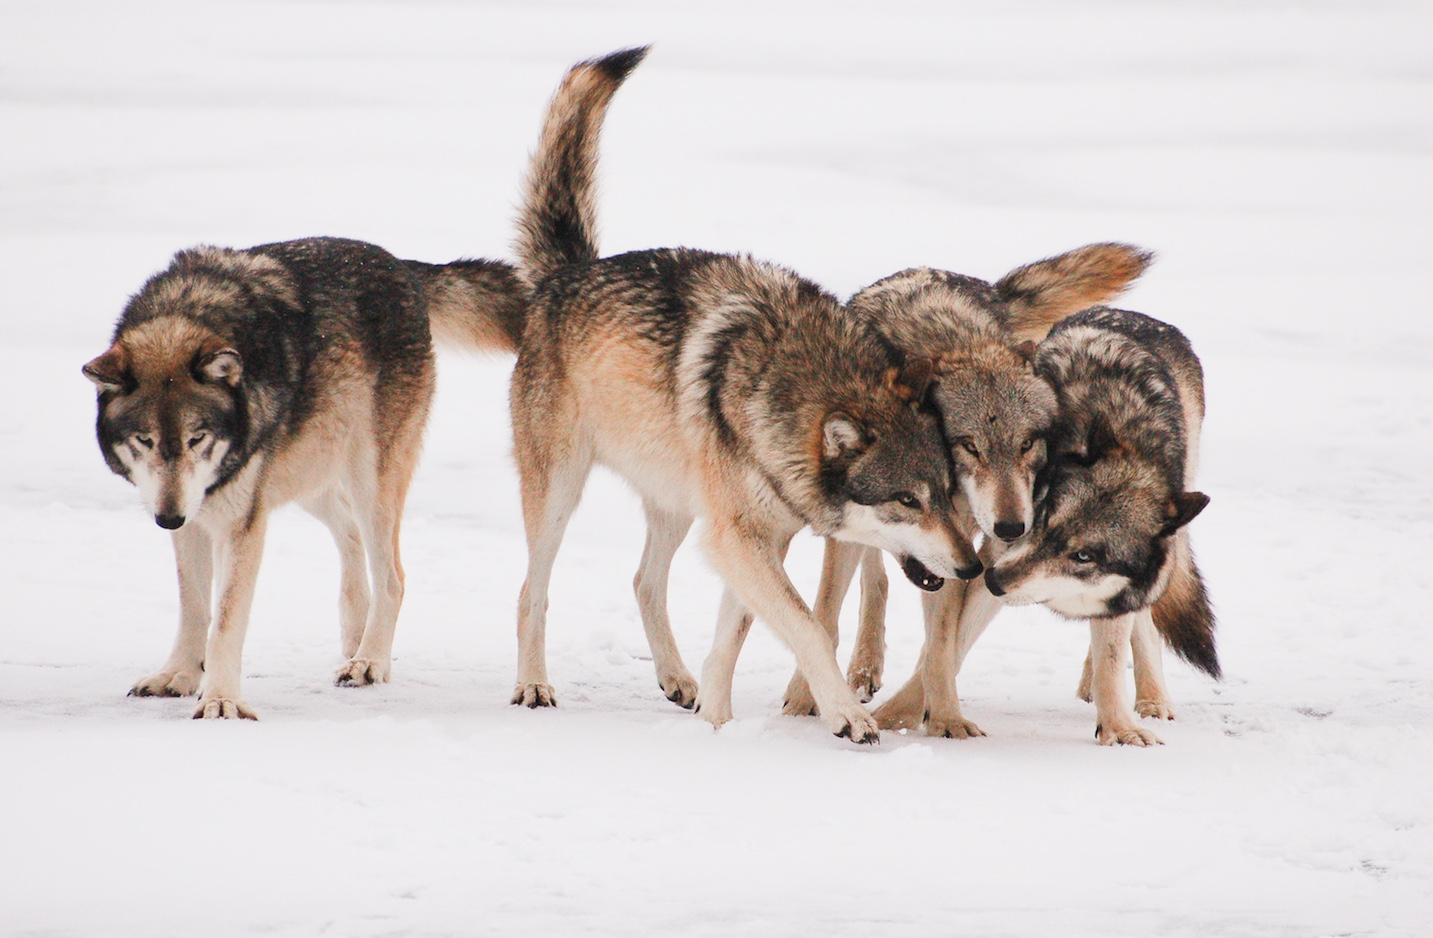 Wolf pack greeting each other in the snow.